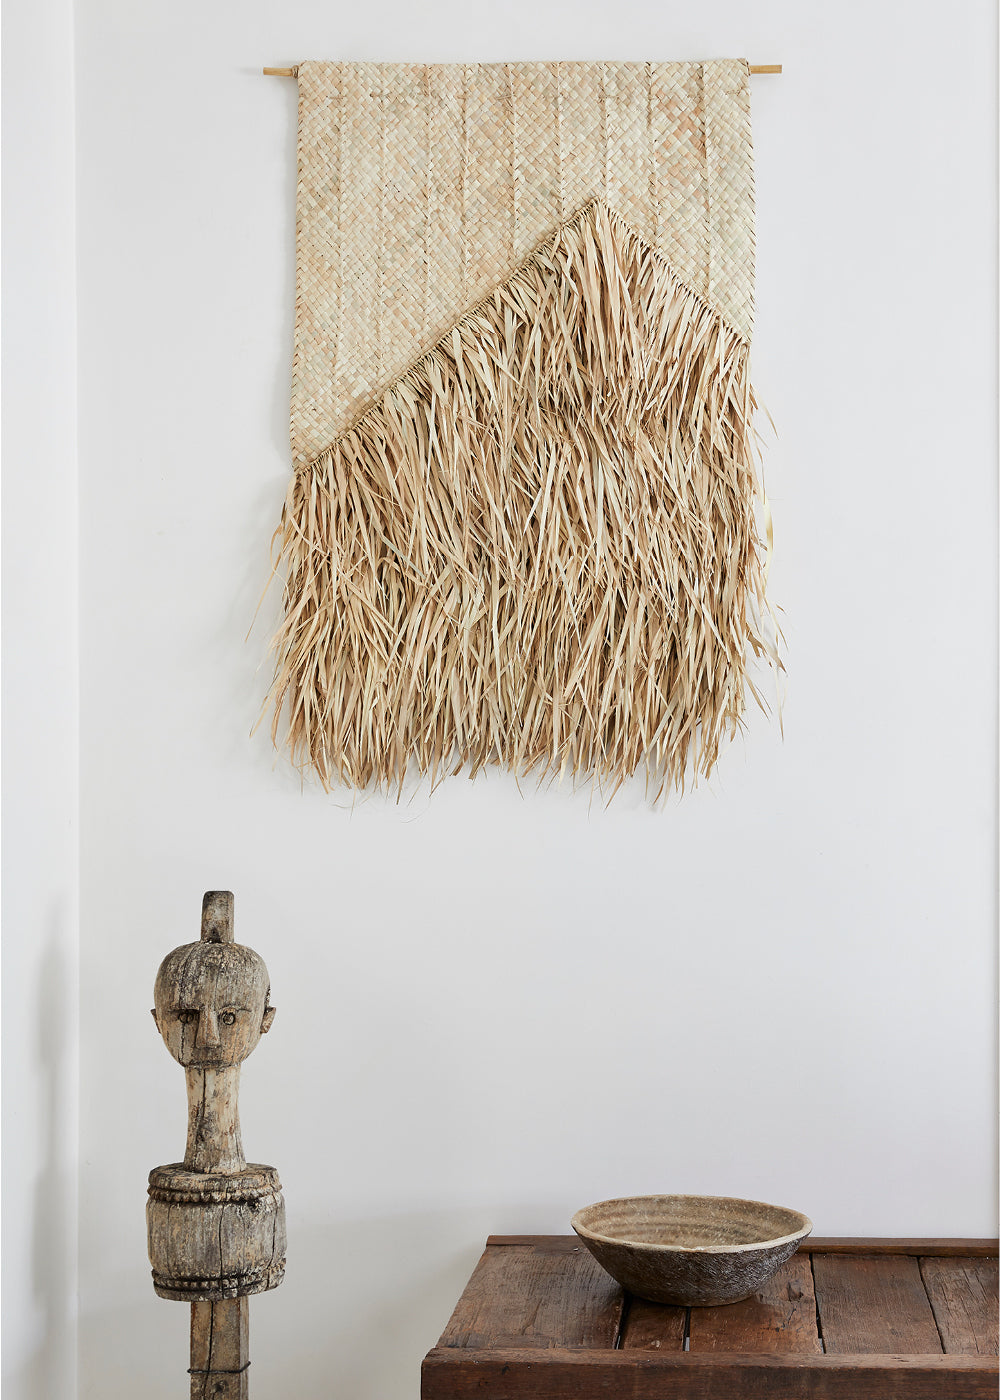 woven wall hanging - woven palm leaf wall hanging with fringe on white wall.